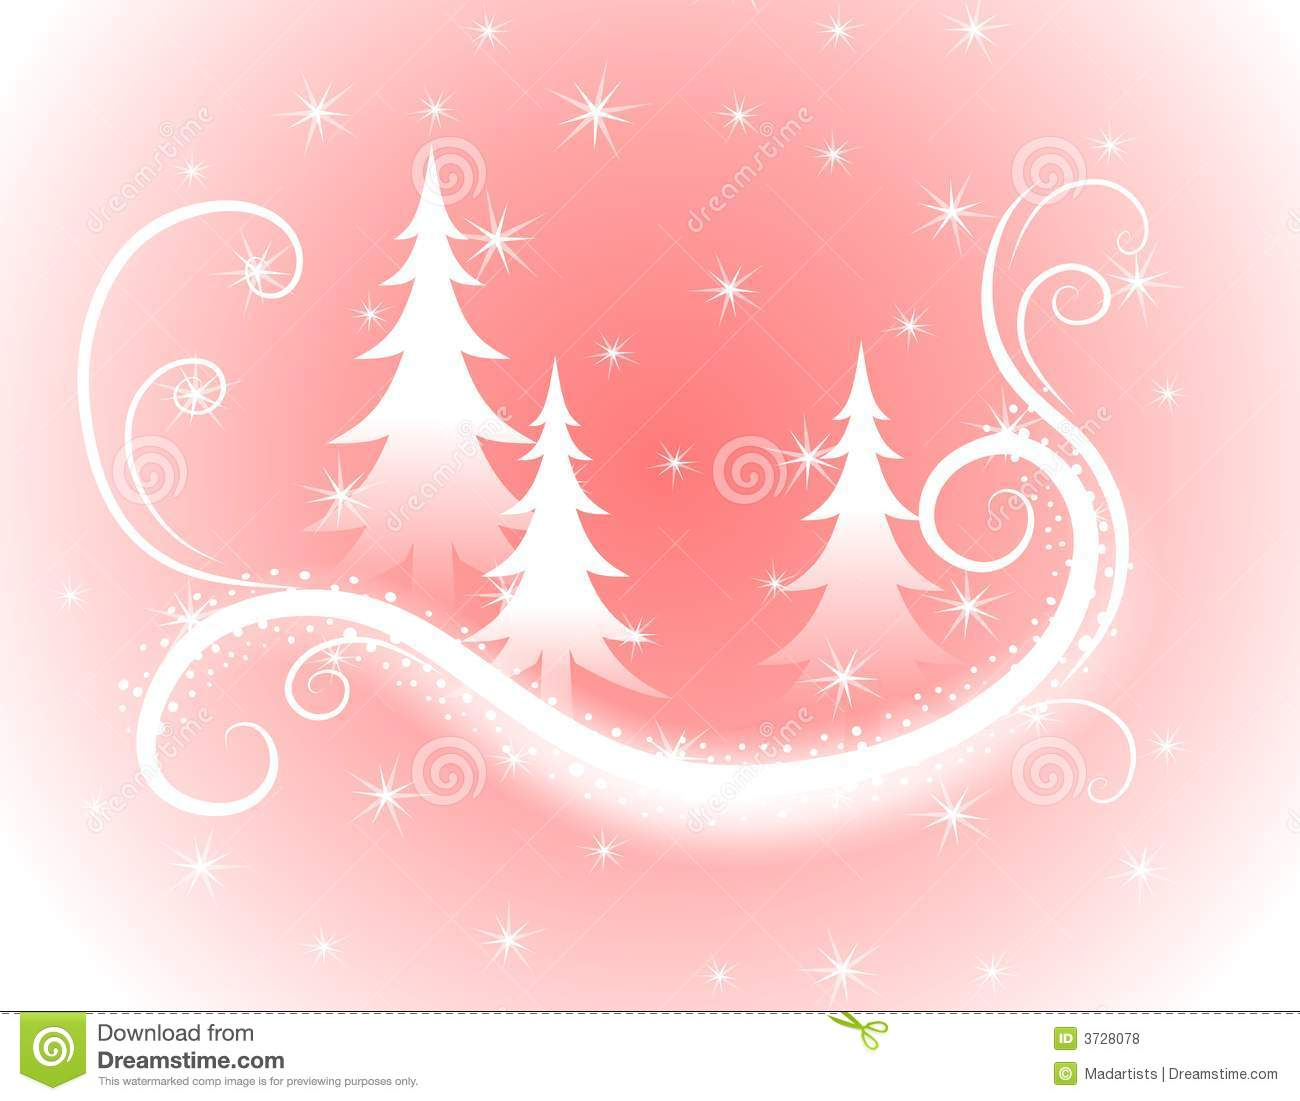 Decorative Pink Christmas Trees Background Royalty Free ...